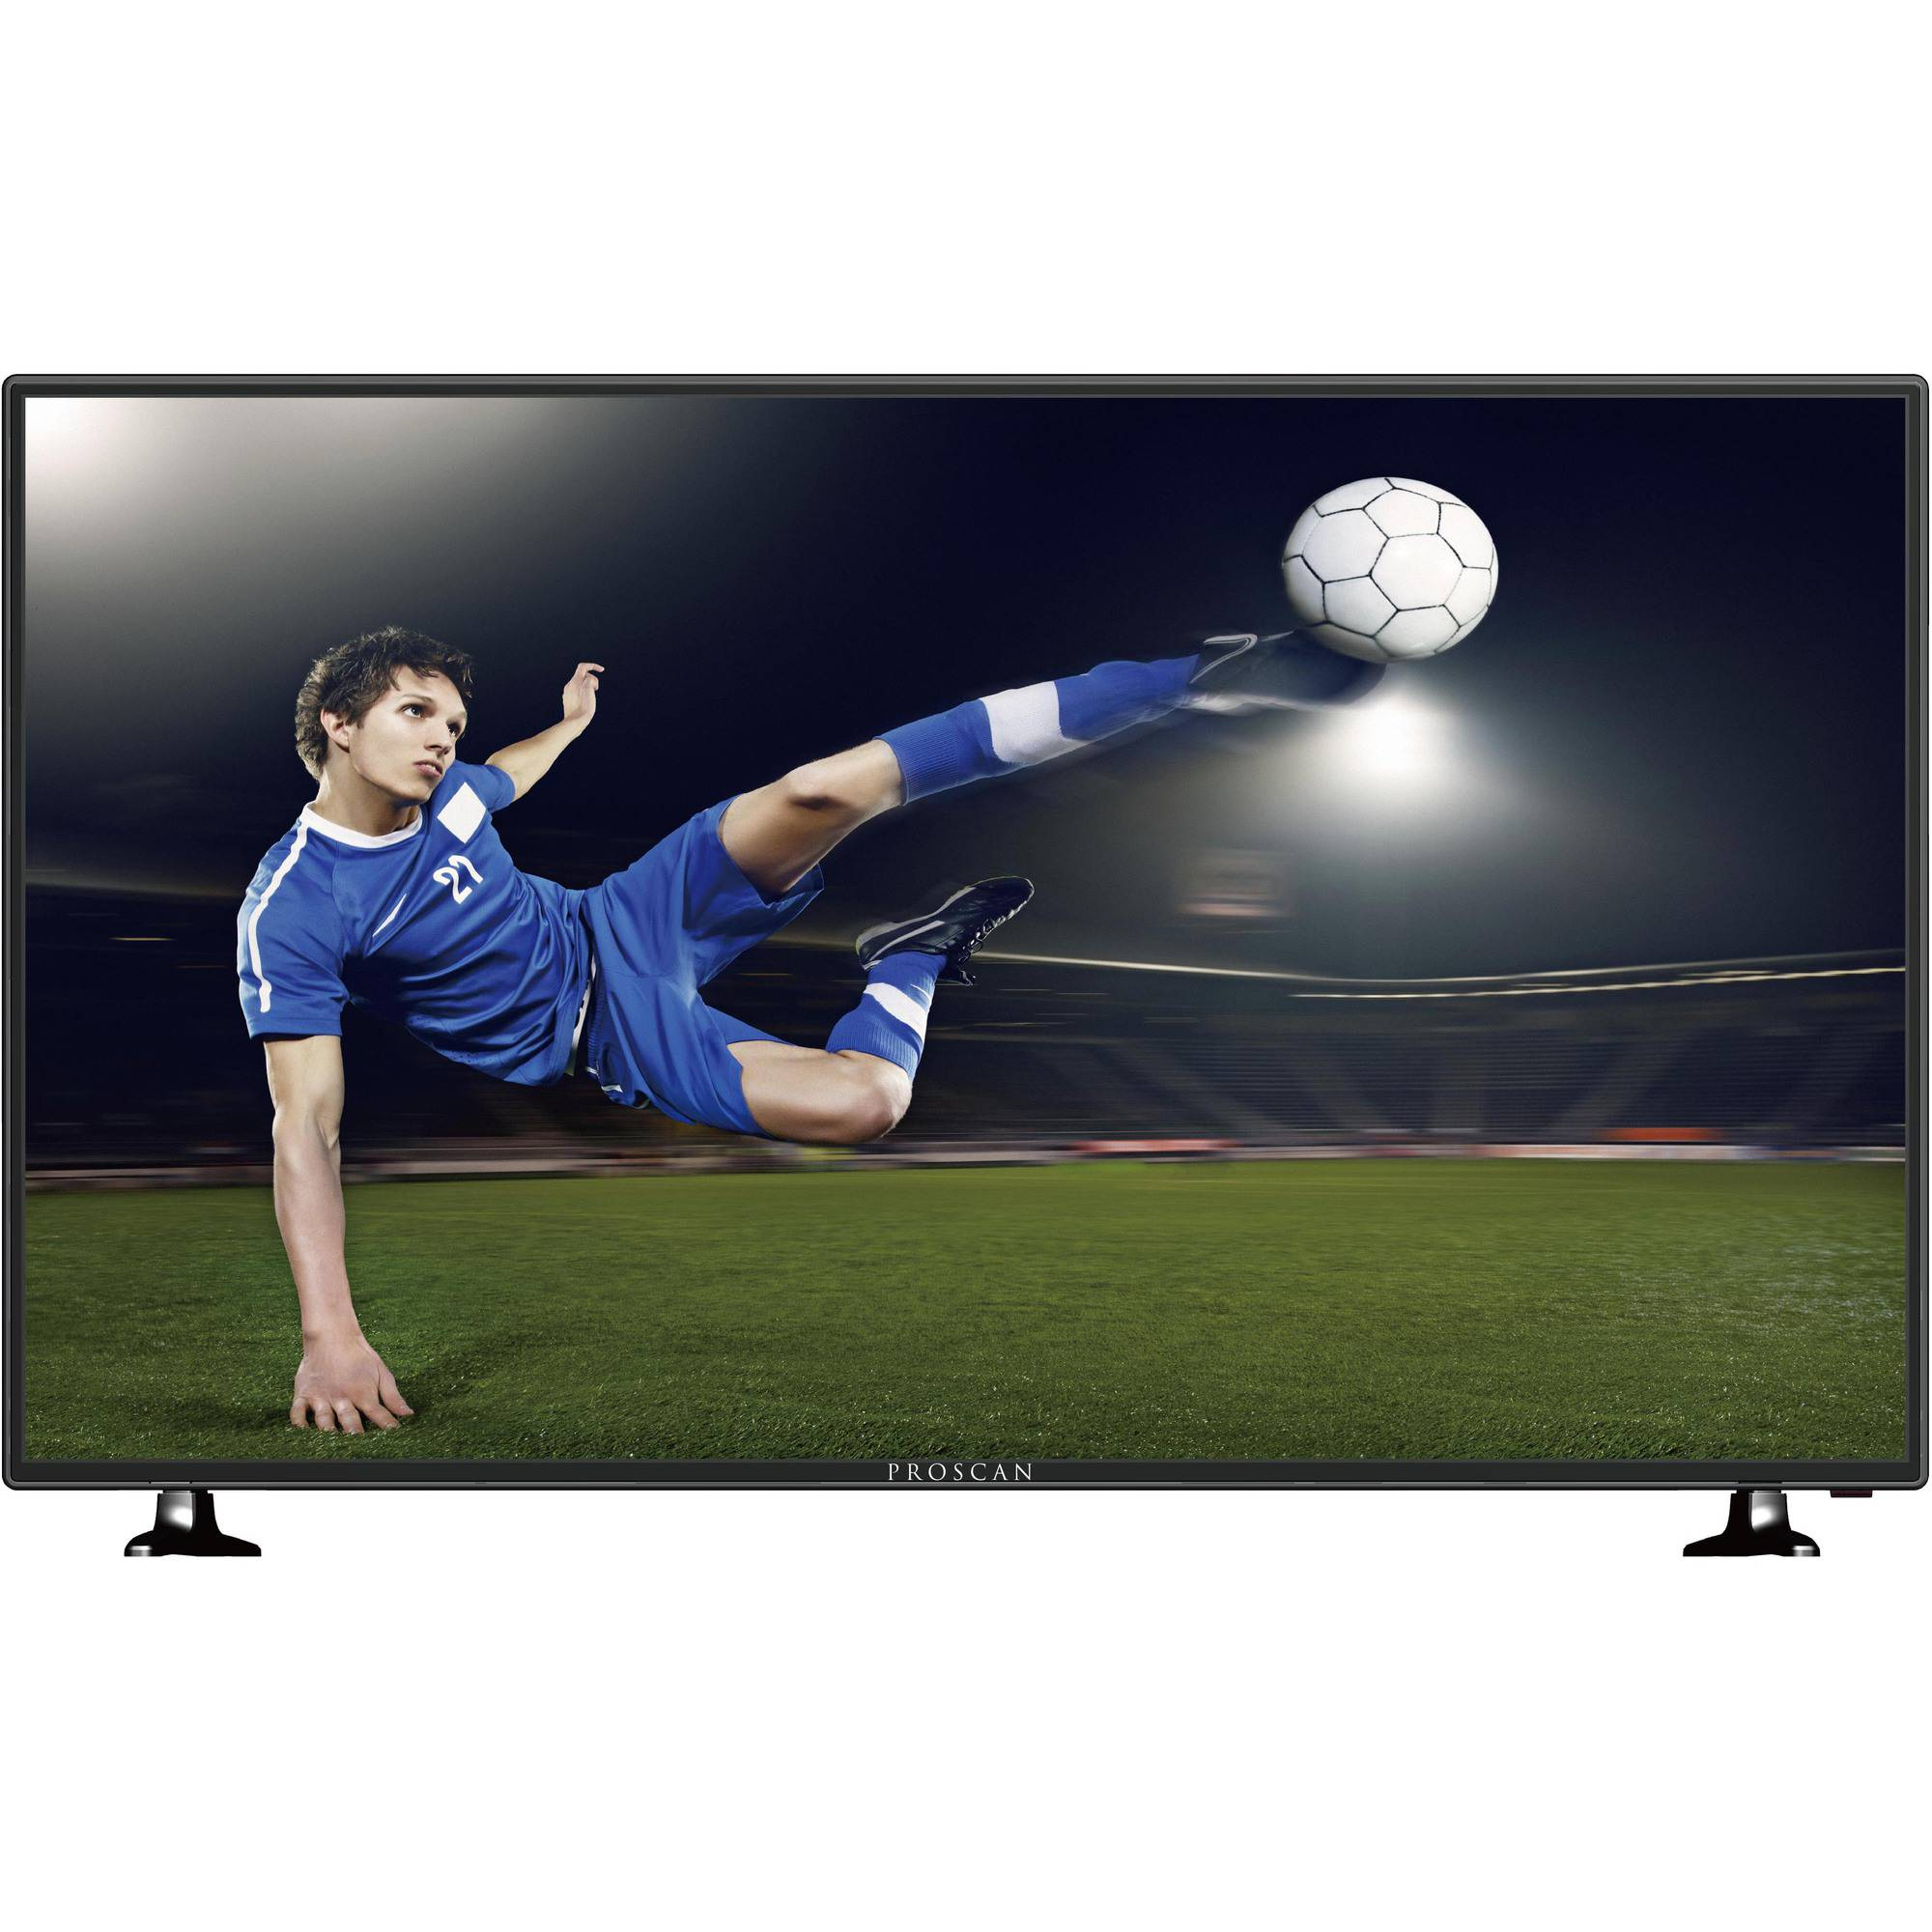 "Proscan Plded5068a 50"" 1080p Led-lcd Tv - 16:9 - Hdtv 1080p - Atsc - 1920 X 1080 - 1 X Hdmi (plded5068a)"